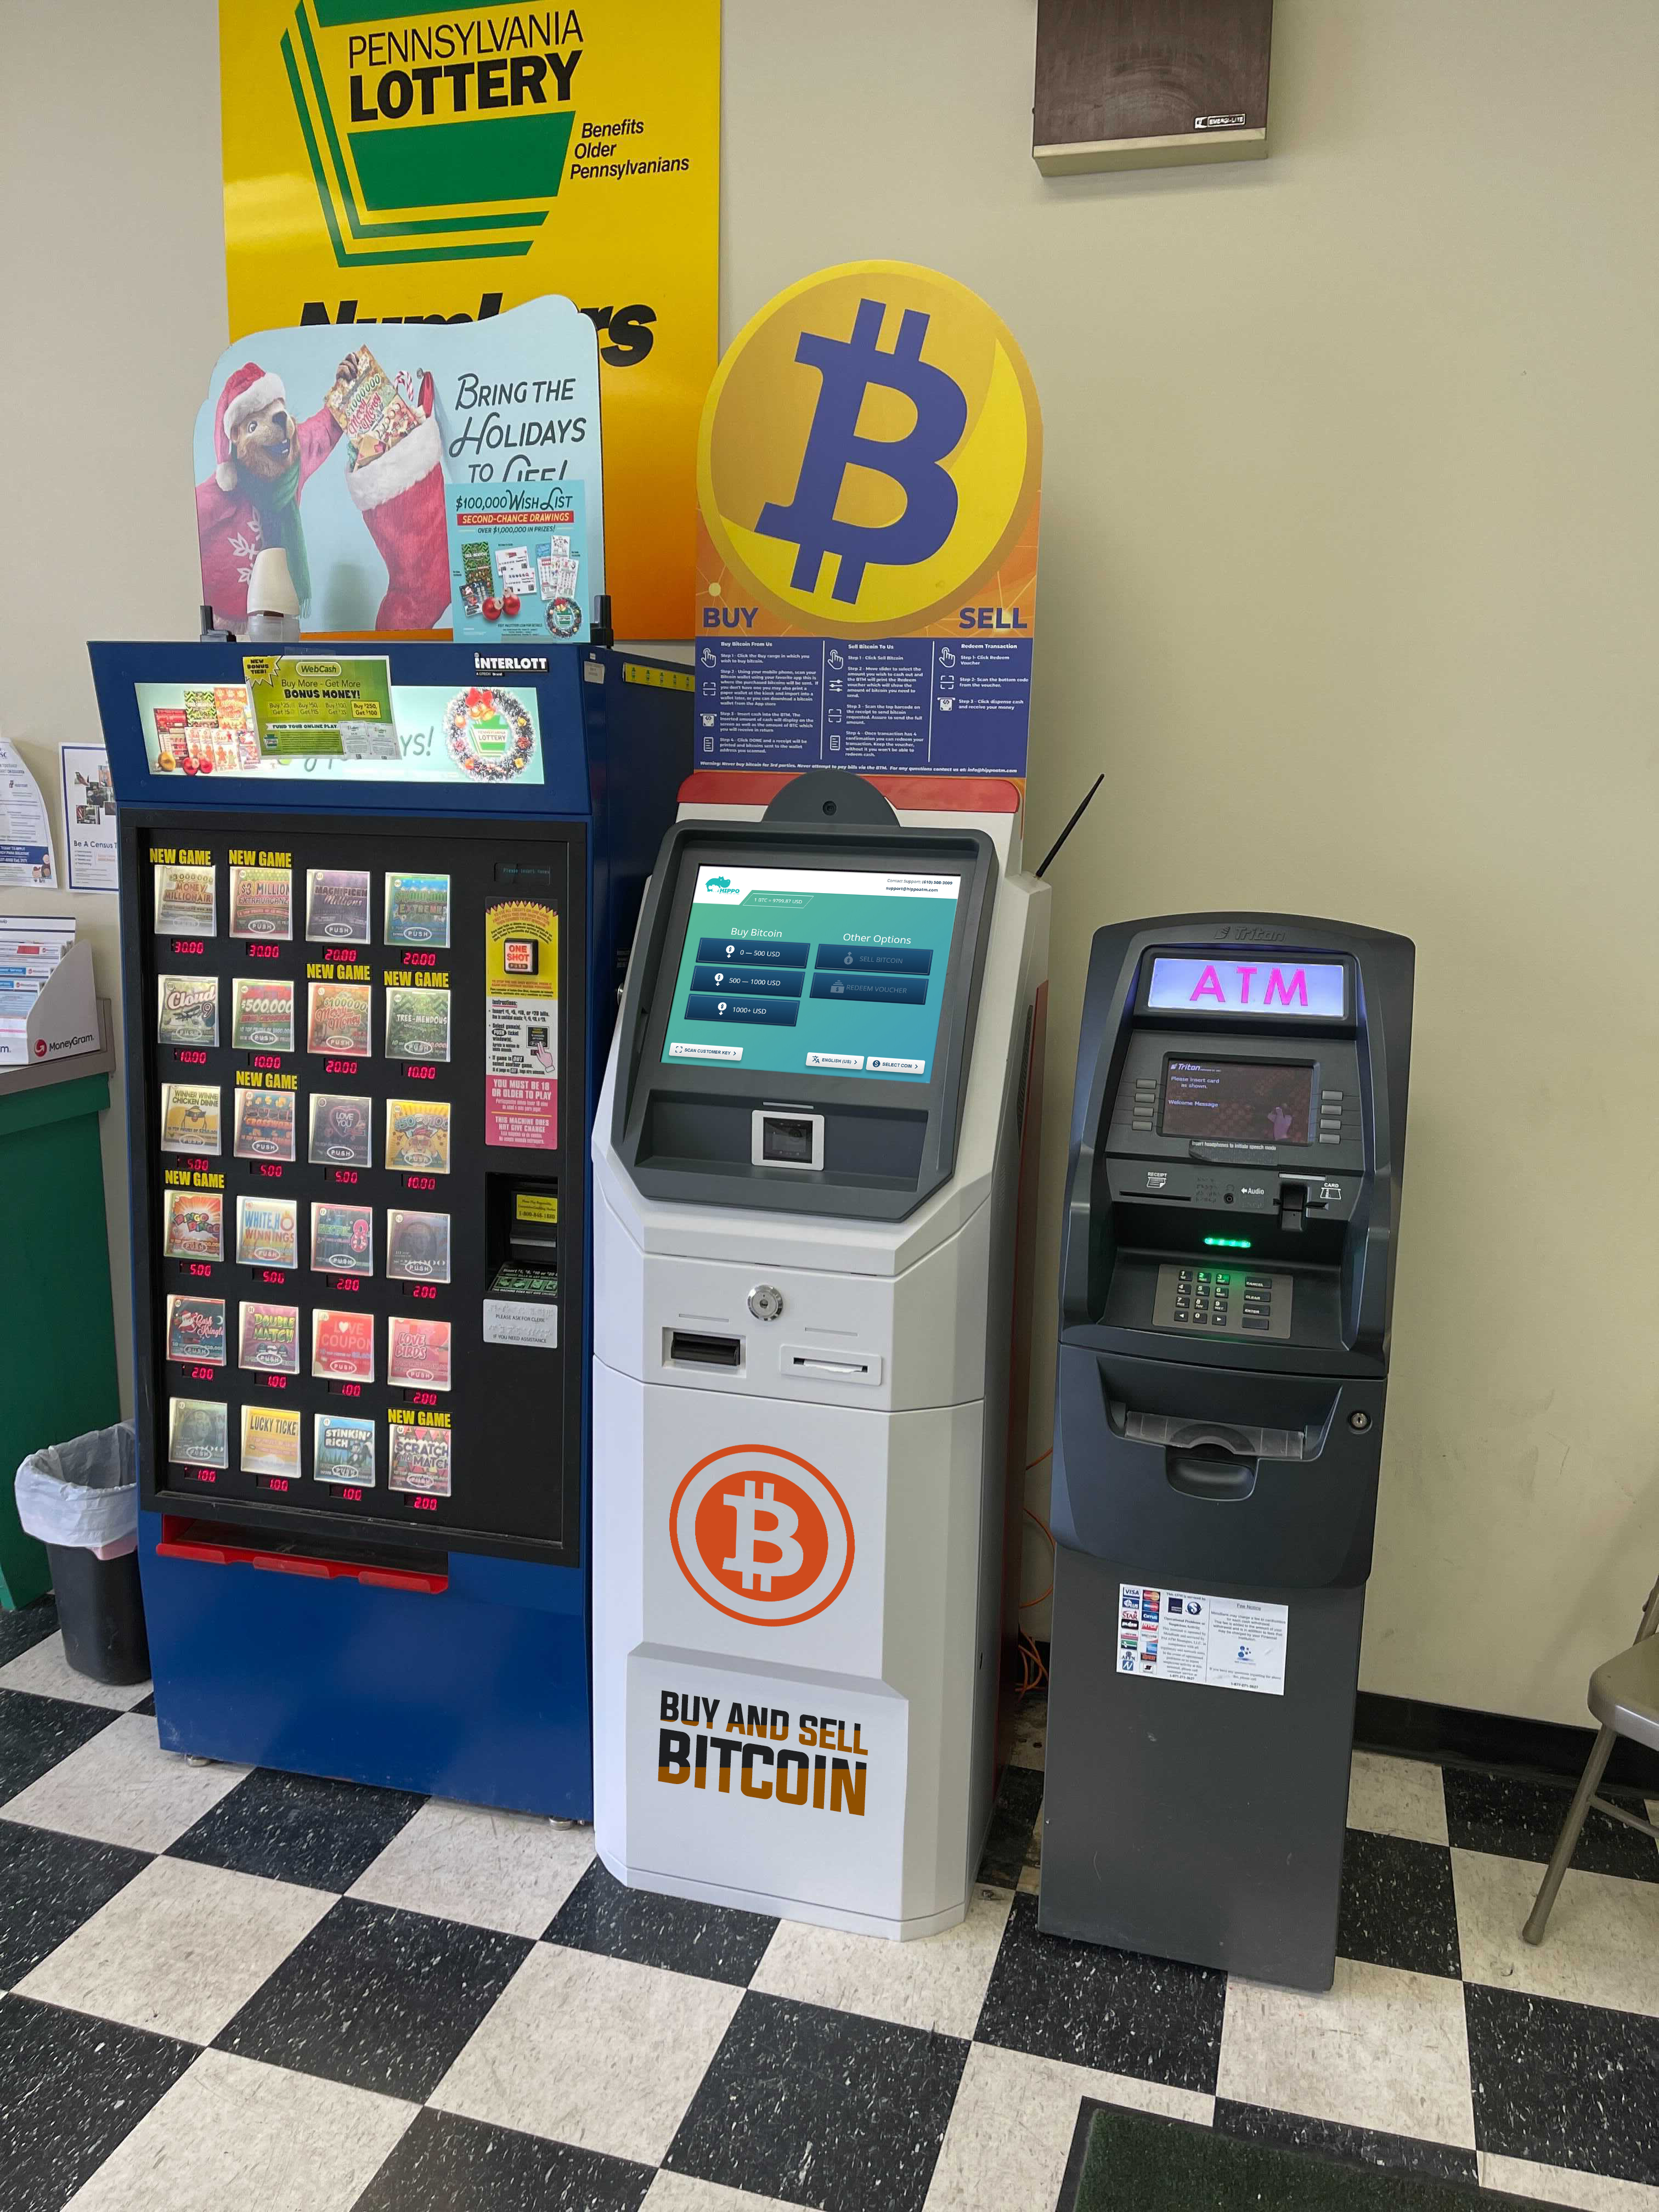 Bitcoin ATM at United Check Cashing address: 1226 Liberty St, Allentown, PA 18102 Hippo Kiosks ATM